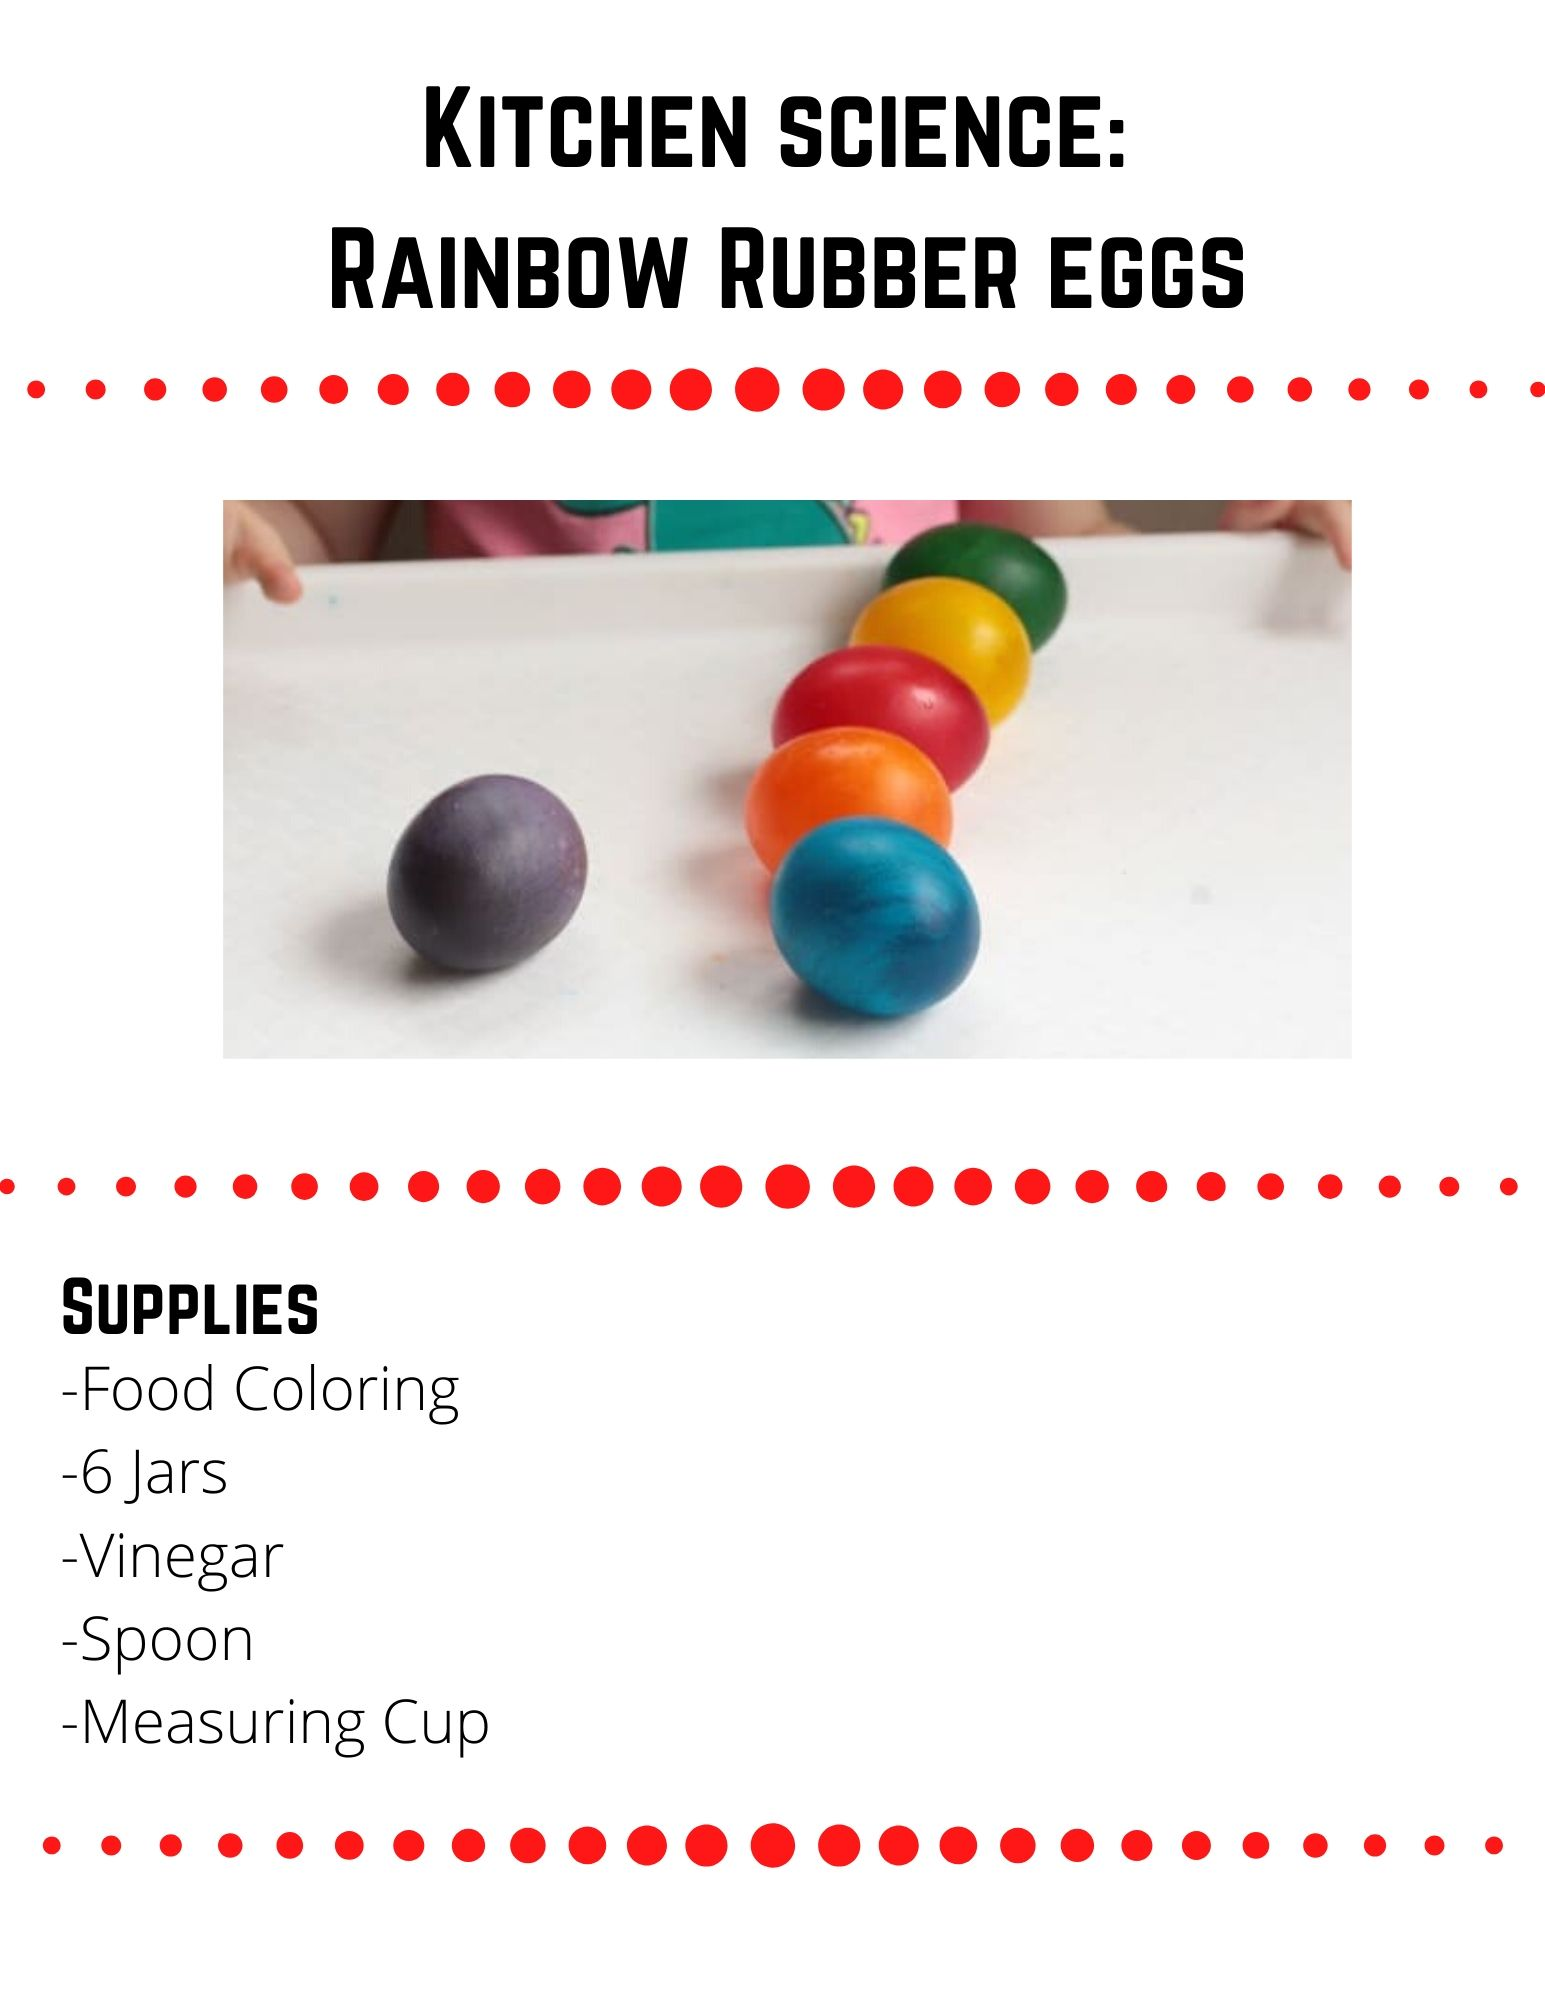 "Kitchen science:  Rainbow Rubber eggs  Supplies  -Food Coloring -6 Jars -Vinegar -Spoon -Measuring Cup  Step 1  Fill each container about 1/2 full of vinegar. Add about 10 drops of food coloring to each jar.  Make each jar a different color of the rainbow.  Step 2  Carefully place a raw egg inside each jar. Let the eggs sit for about 48-72 hours in the vinegar.  Step 3  Optional: Try putting other eggs in different liquids to see if they produce a different or similar reaction.  Step 4  When the surface of the water has a weird scummy film, the eggs are ready to come out.  Remove the eggs from the jars and rinse them in water. The egg should be completely whole, but soft!  Step 5 Gently roll and bounce the eggs and watch what happens!  Step 6  When you are done playing with the eggs, break them open. You might be surprised to see that the egg yolk is still yellow! The high protein content of the yolk prevents the egg's cells from absorbing the  colored liquid that is absorbed by the rest of the egg.  where did the shell go?  Did you know that inside of every egg shell is a membrane holding the ""guts"" of the egg in place? This membrane is located between the egg shell and the egg white. The membranes protect the growing chick from exposure to bacteria,   In this experiment, the vinegar eats through the egg's calcium shell, but cannot dissolve the egg's membrane. The egg membrane is strong, which is how you can gently play with and bounce the egg without breaking it.  Source: https://www.steamsational.com/rainbow-naked-eggs-experiment/"